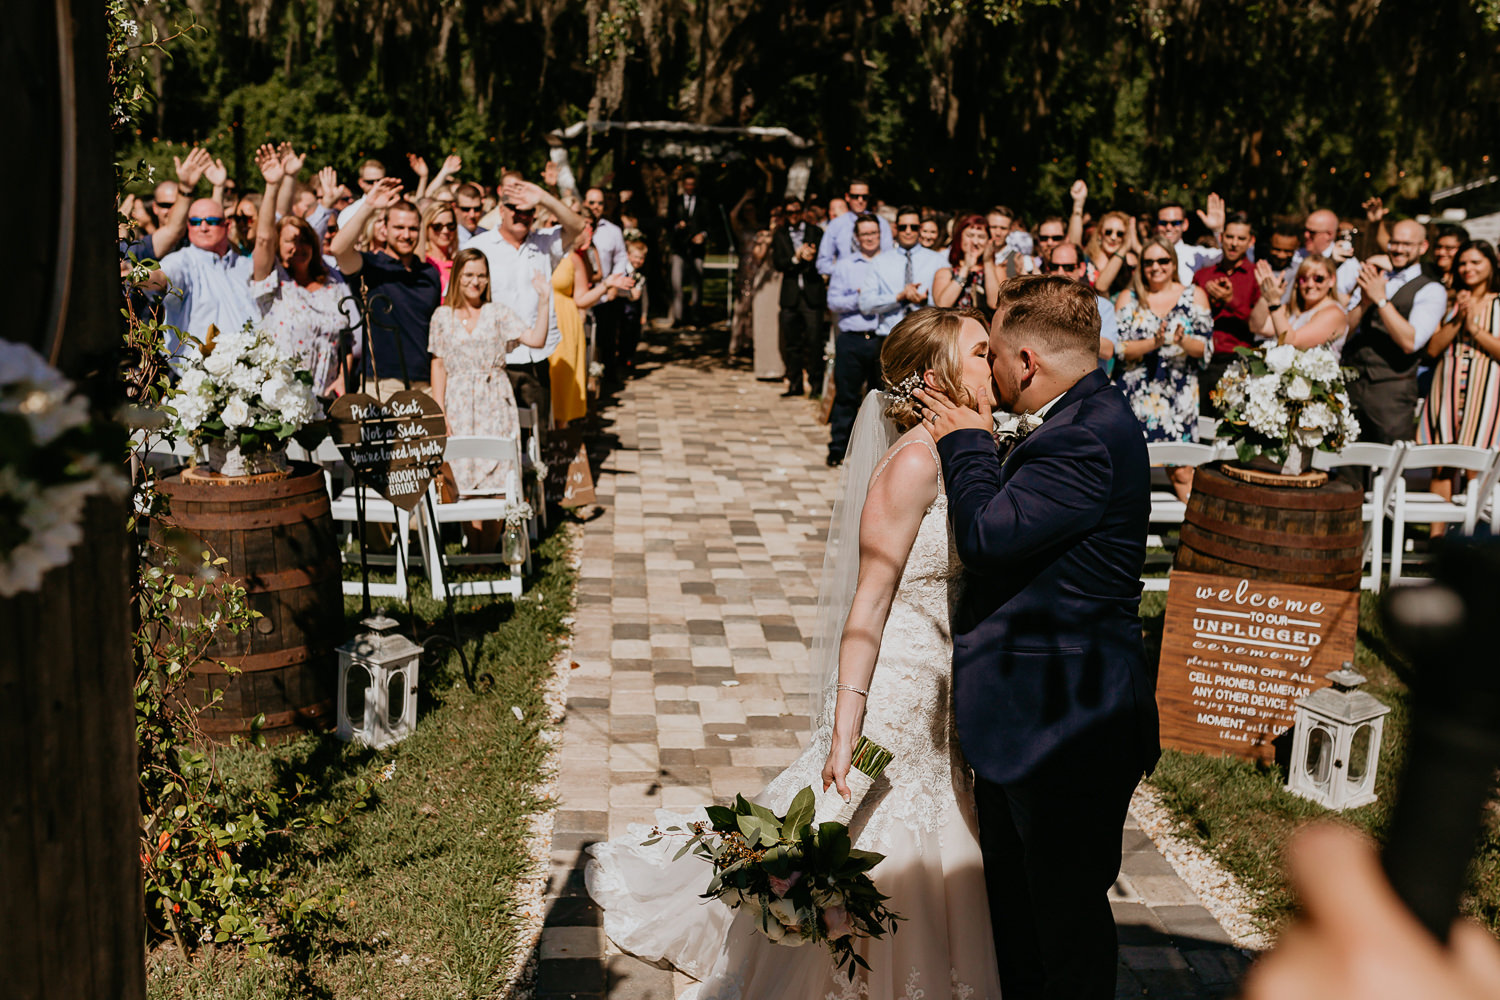 groom kissing his new bride at the end of the aisle, all ceremony wedding guests cheering